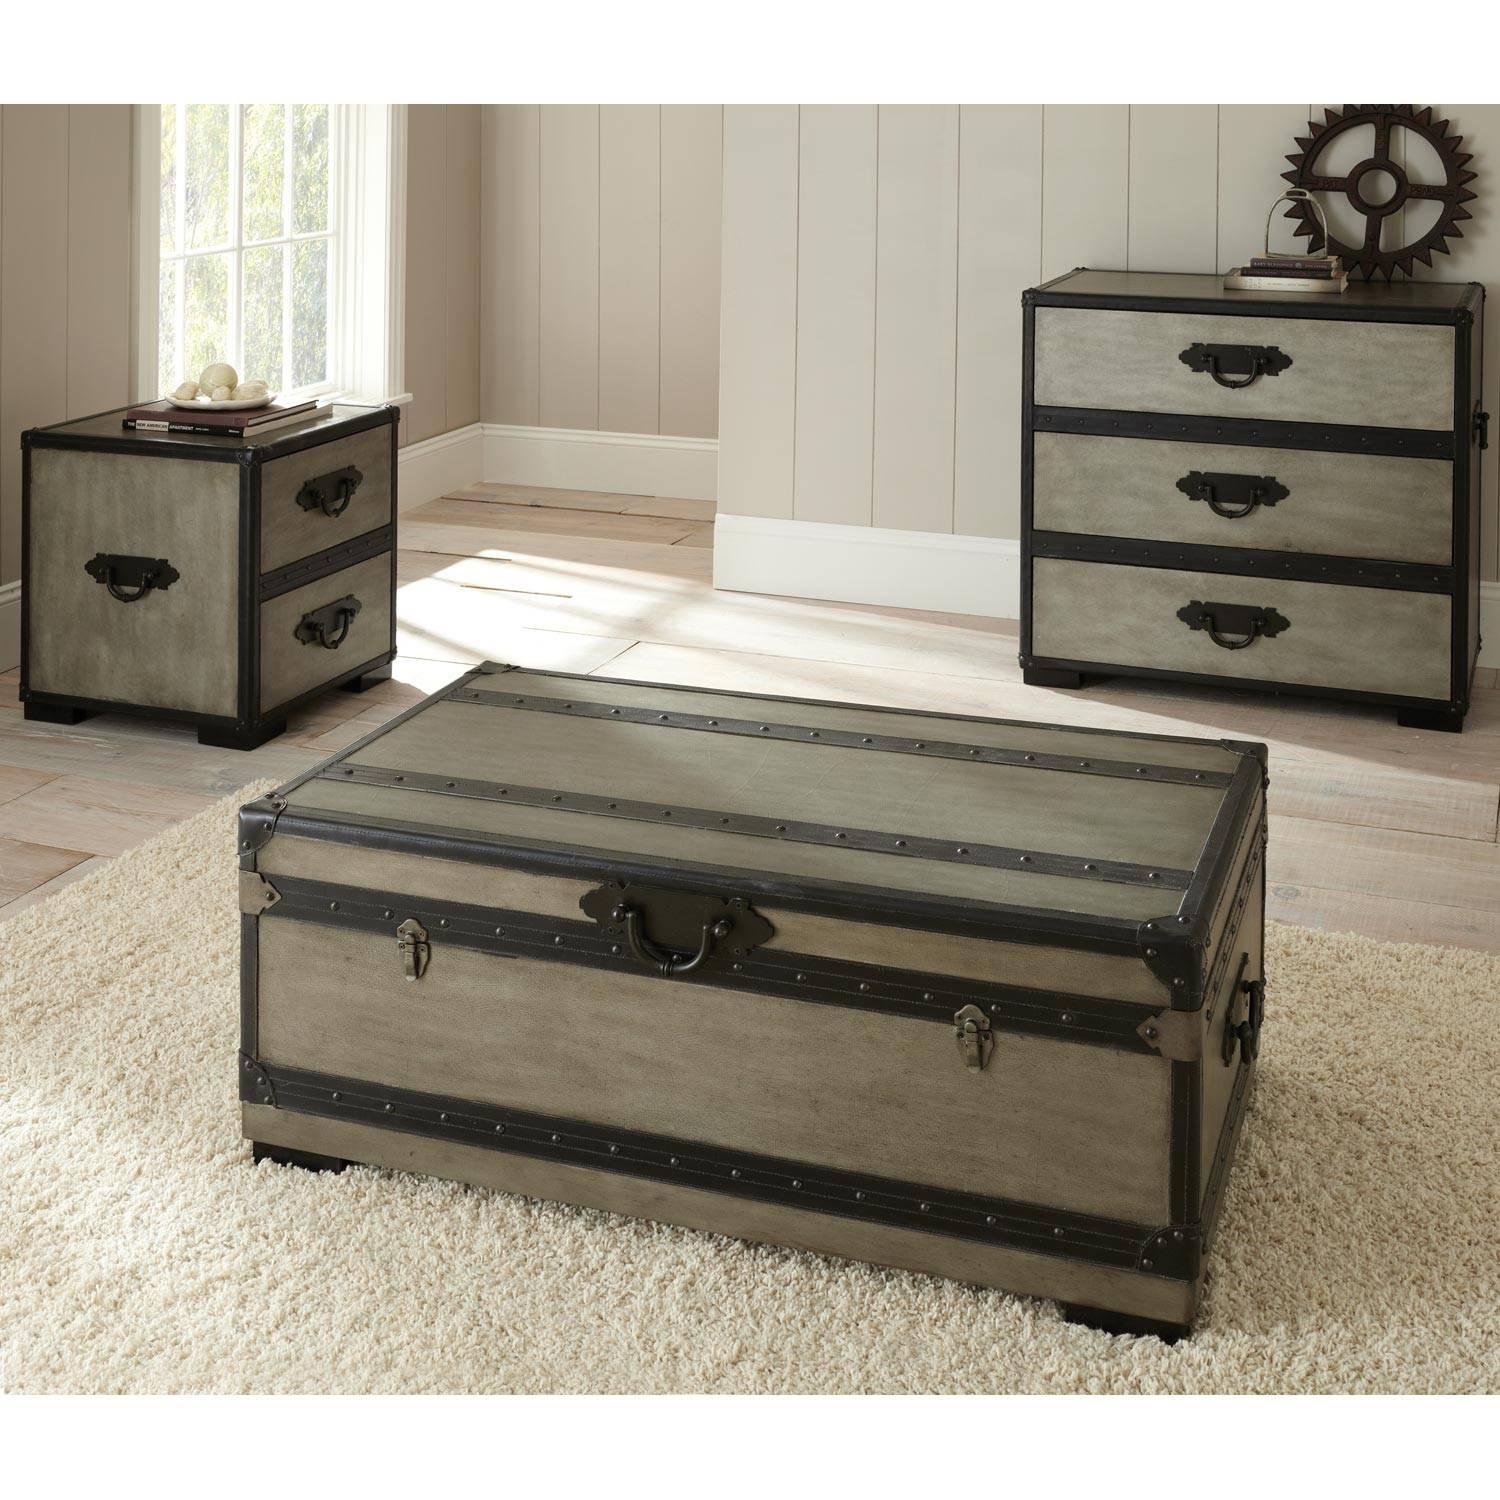 Table. Black Trunk Coffee Table - Home Interior Design pertaining to Square Chest Coffee Tables (Image 25 of 30)